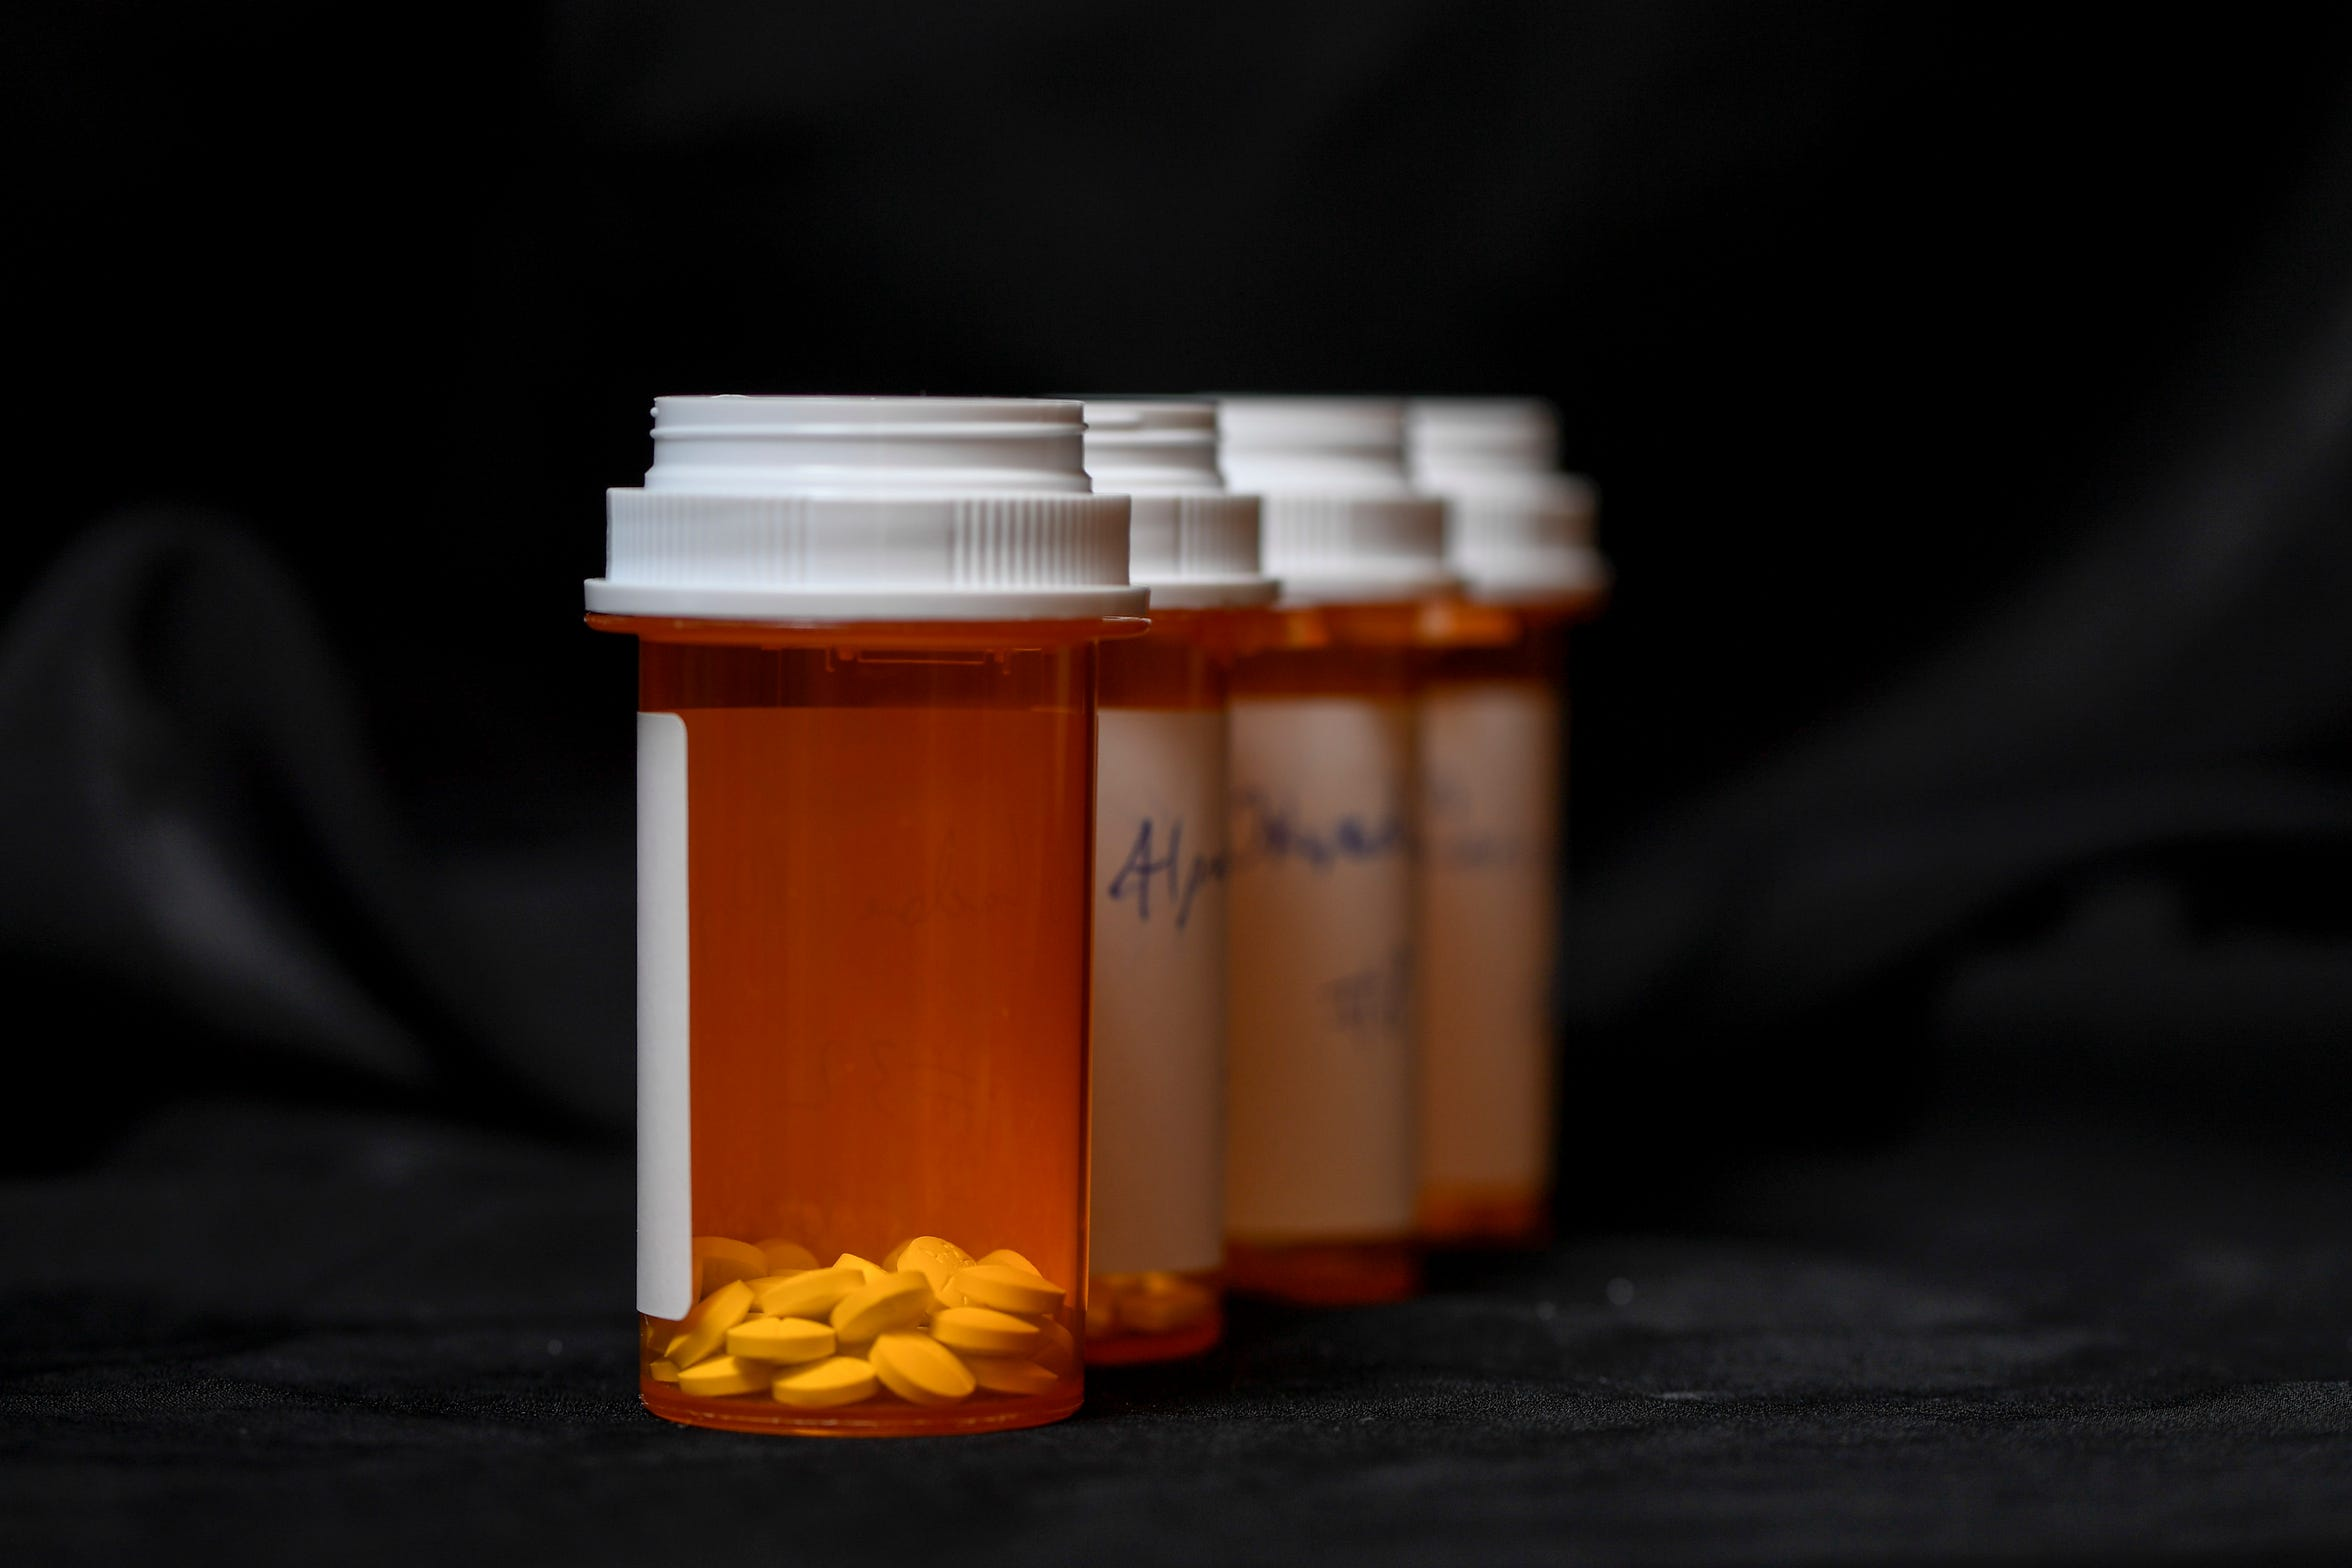 Nurse practitioner Christina Collins often prescribed her patients a worrisome mix of opioids and other drugs like muscle relaxers. This photo shows a daily dose of methadone, Roxicodone, Soma and Xanax, which Collins prescribed to a patient in 2011.